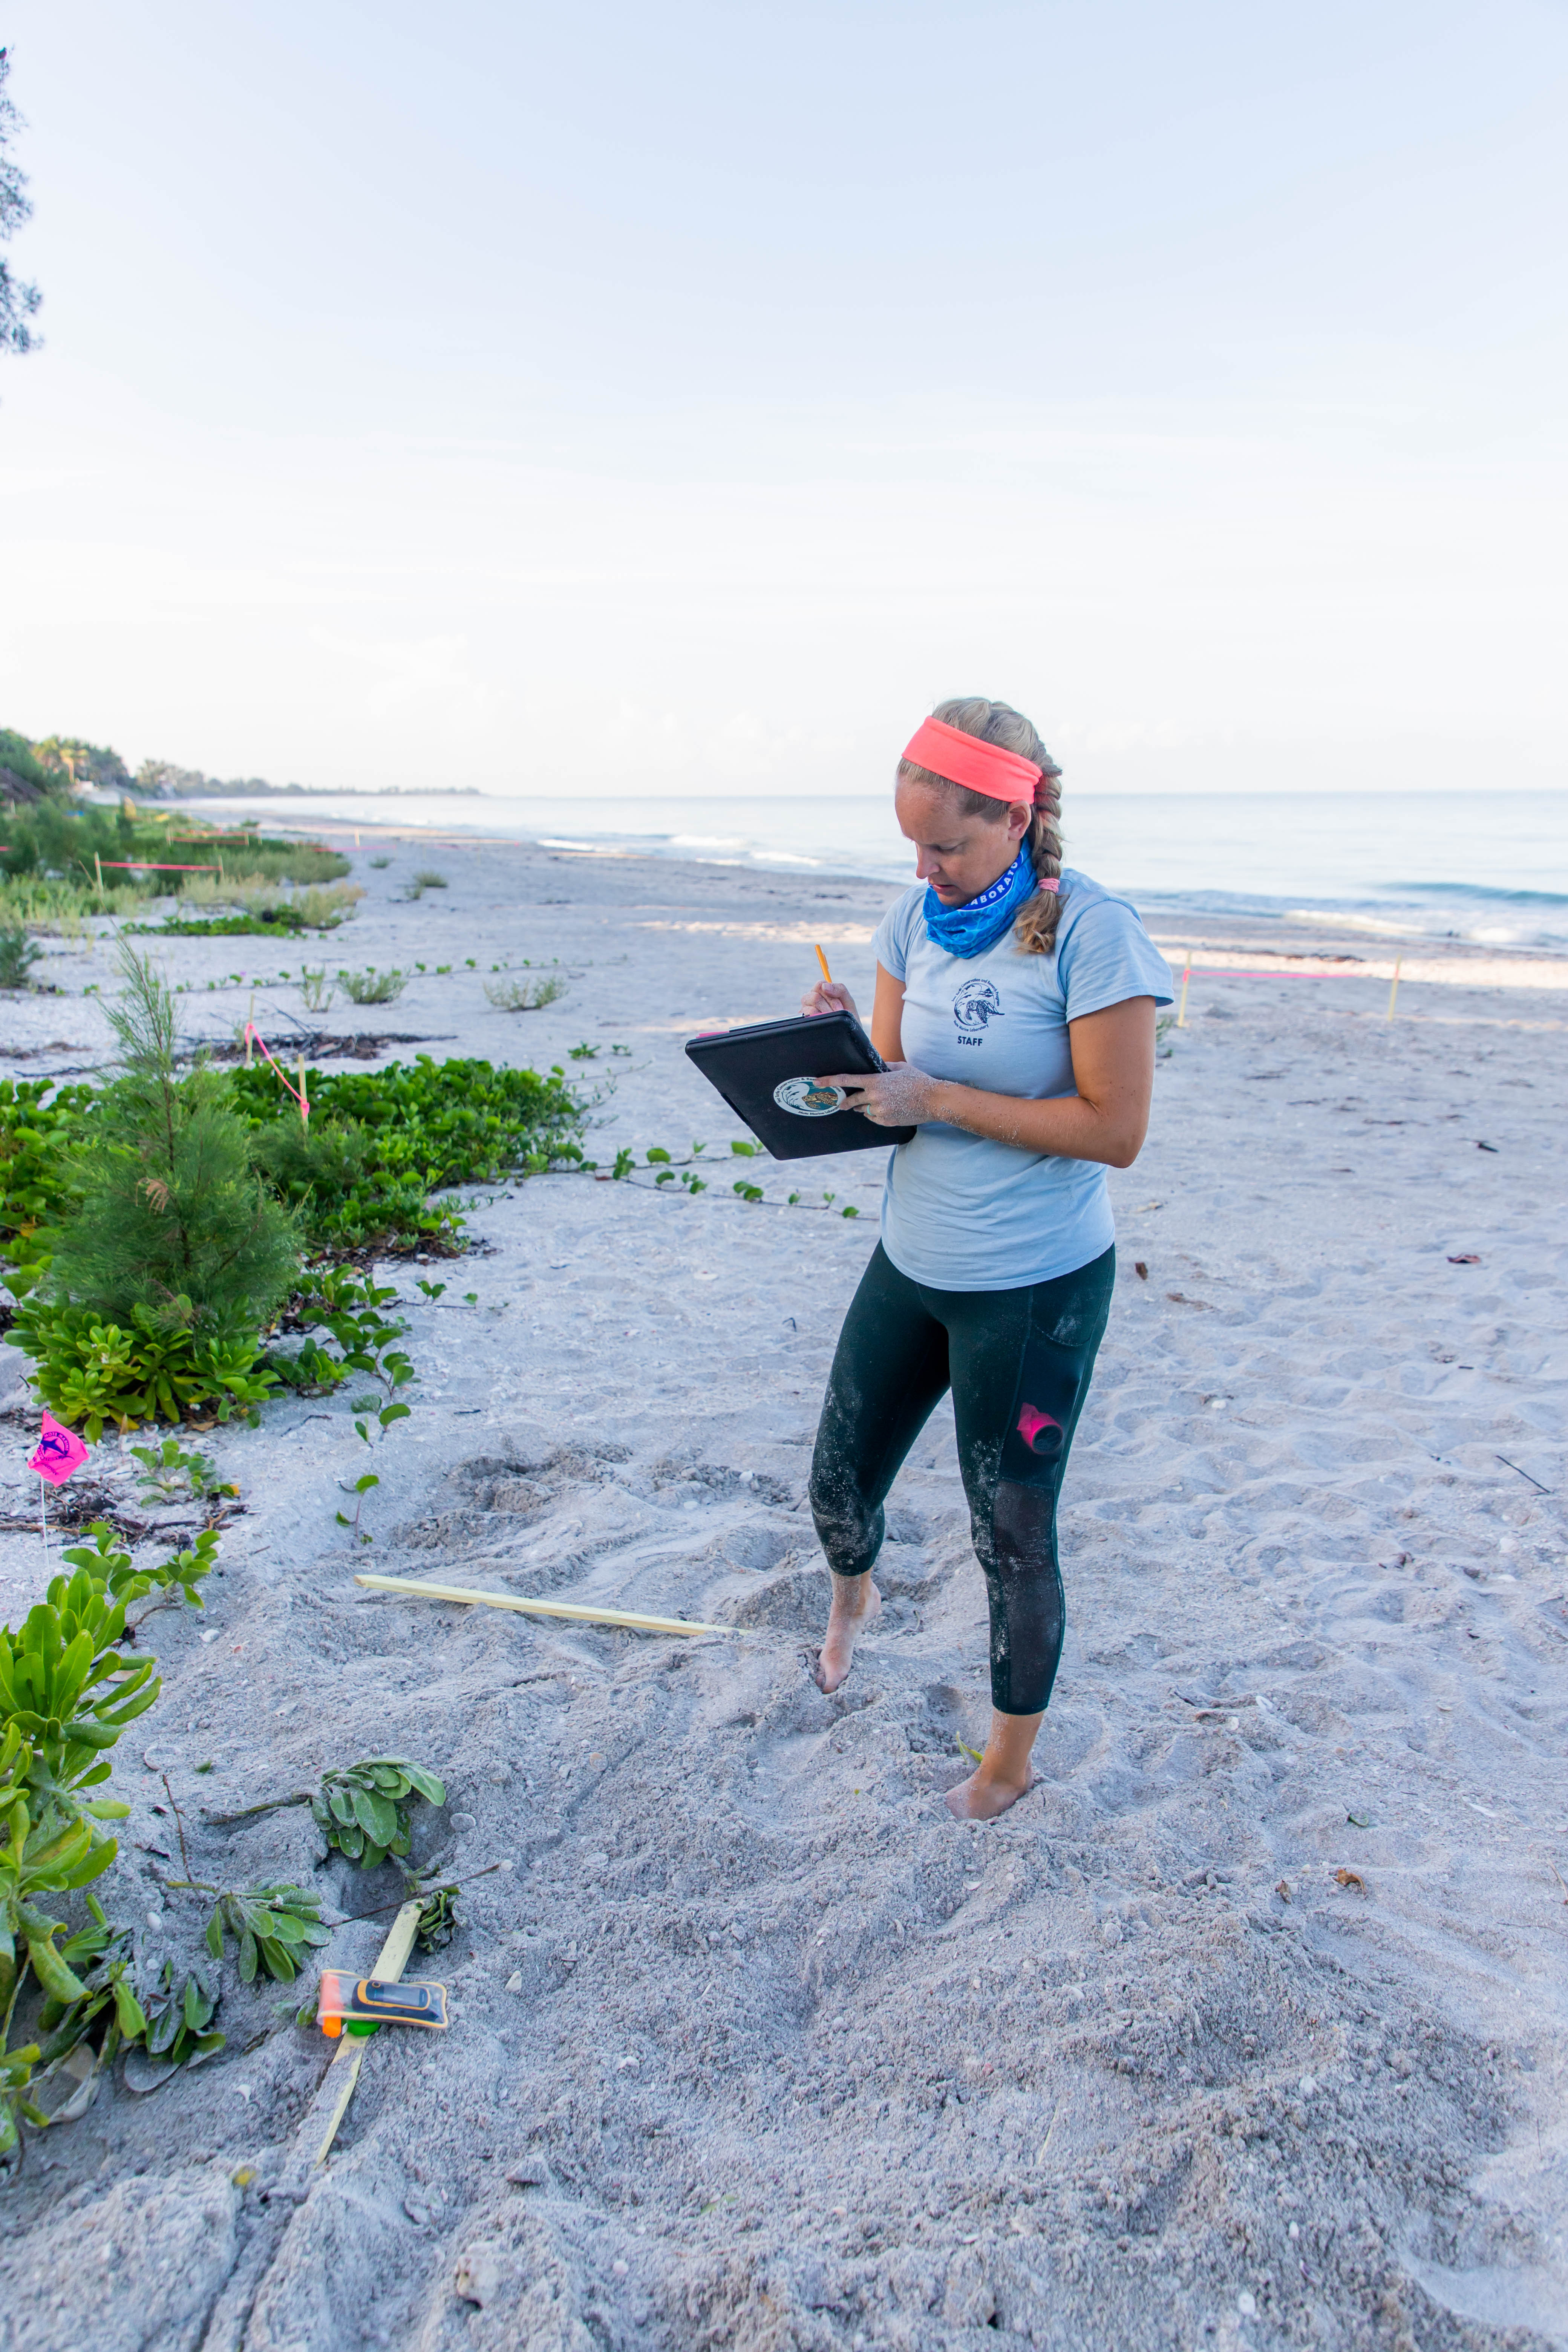 Mote biologist on the beach documents a sea turtle nest on her clipboard.